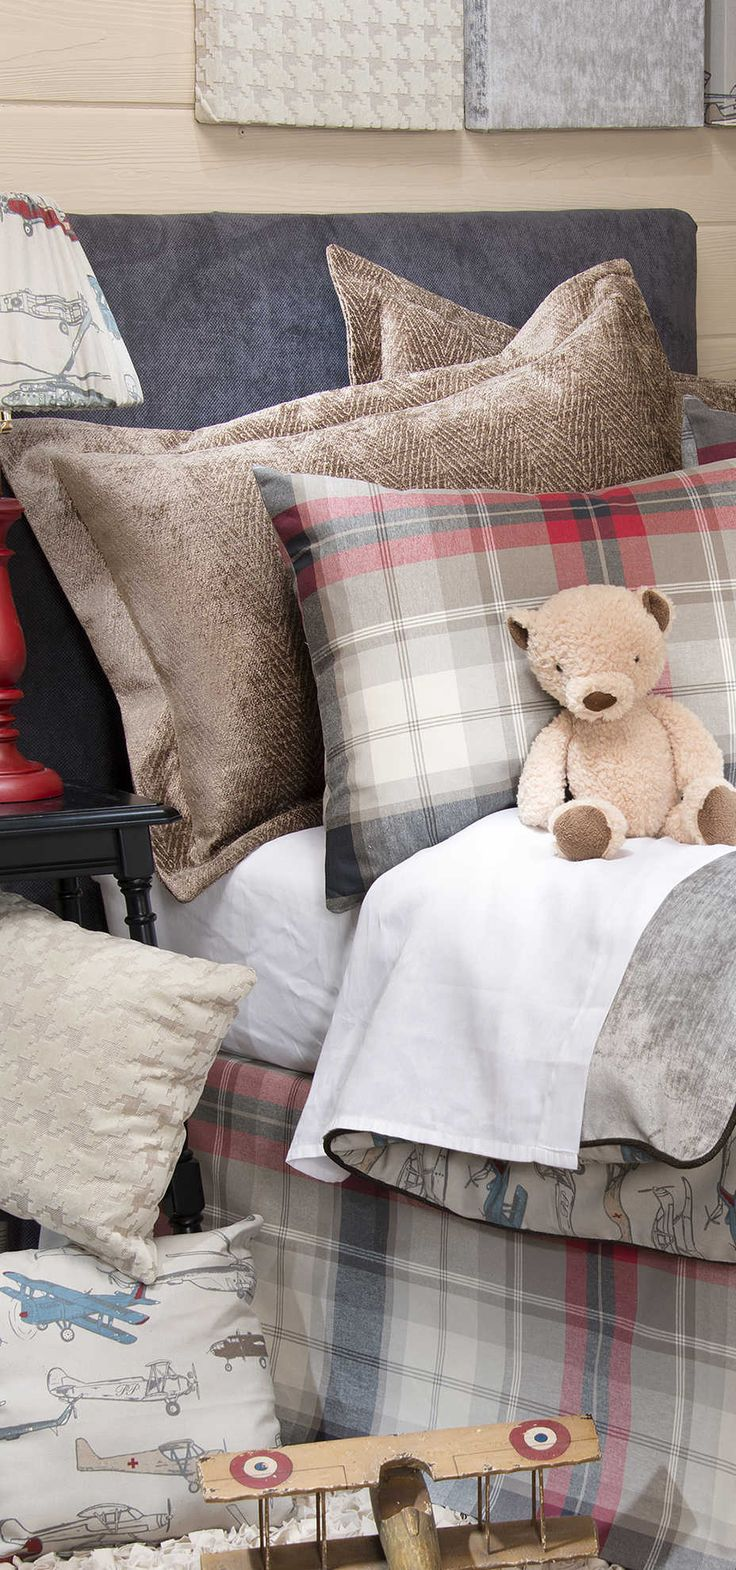 Boy plaid bedding - Find Boys Bedding In Tons Of Adorable Colors And Prints From All The Top Brands We Hand Select Quality Bedding For Kids Of All Ages